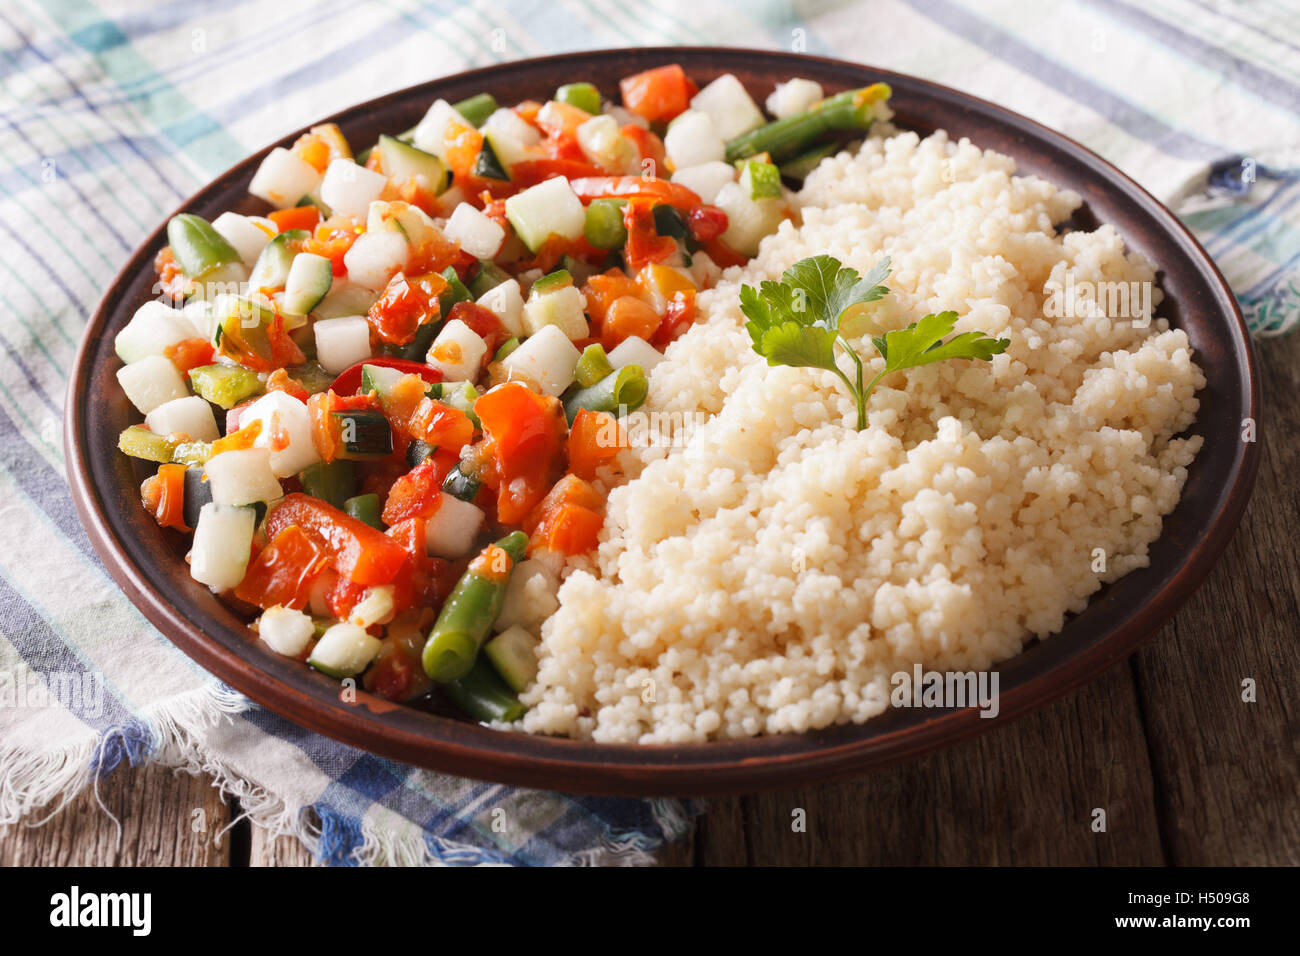 Couscous with vegetables and herbs closeup on the table. horizontal Stock Photo